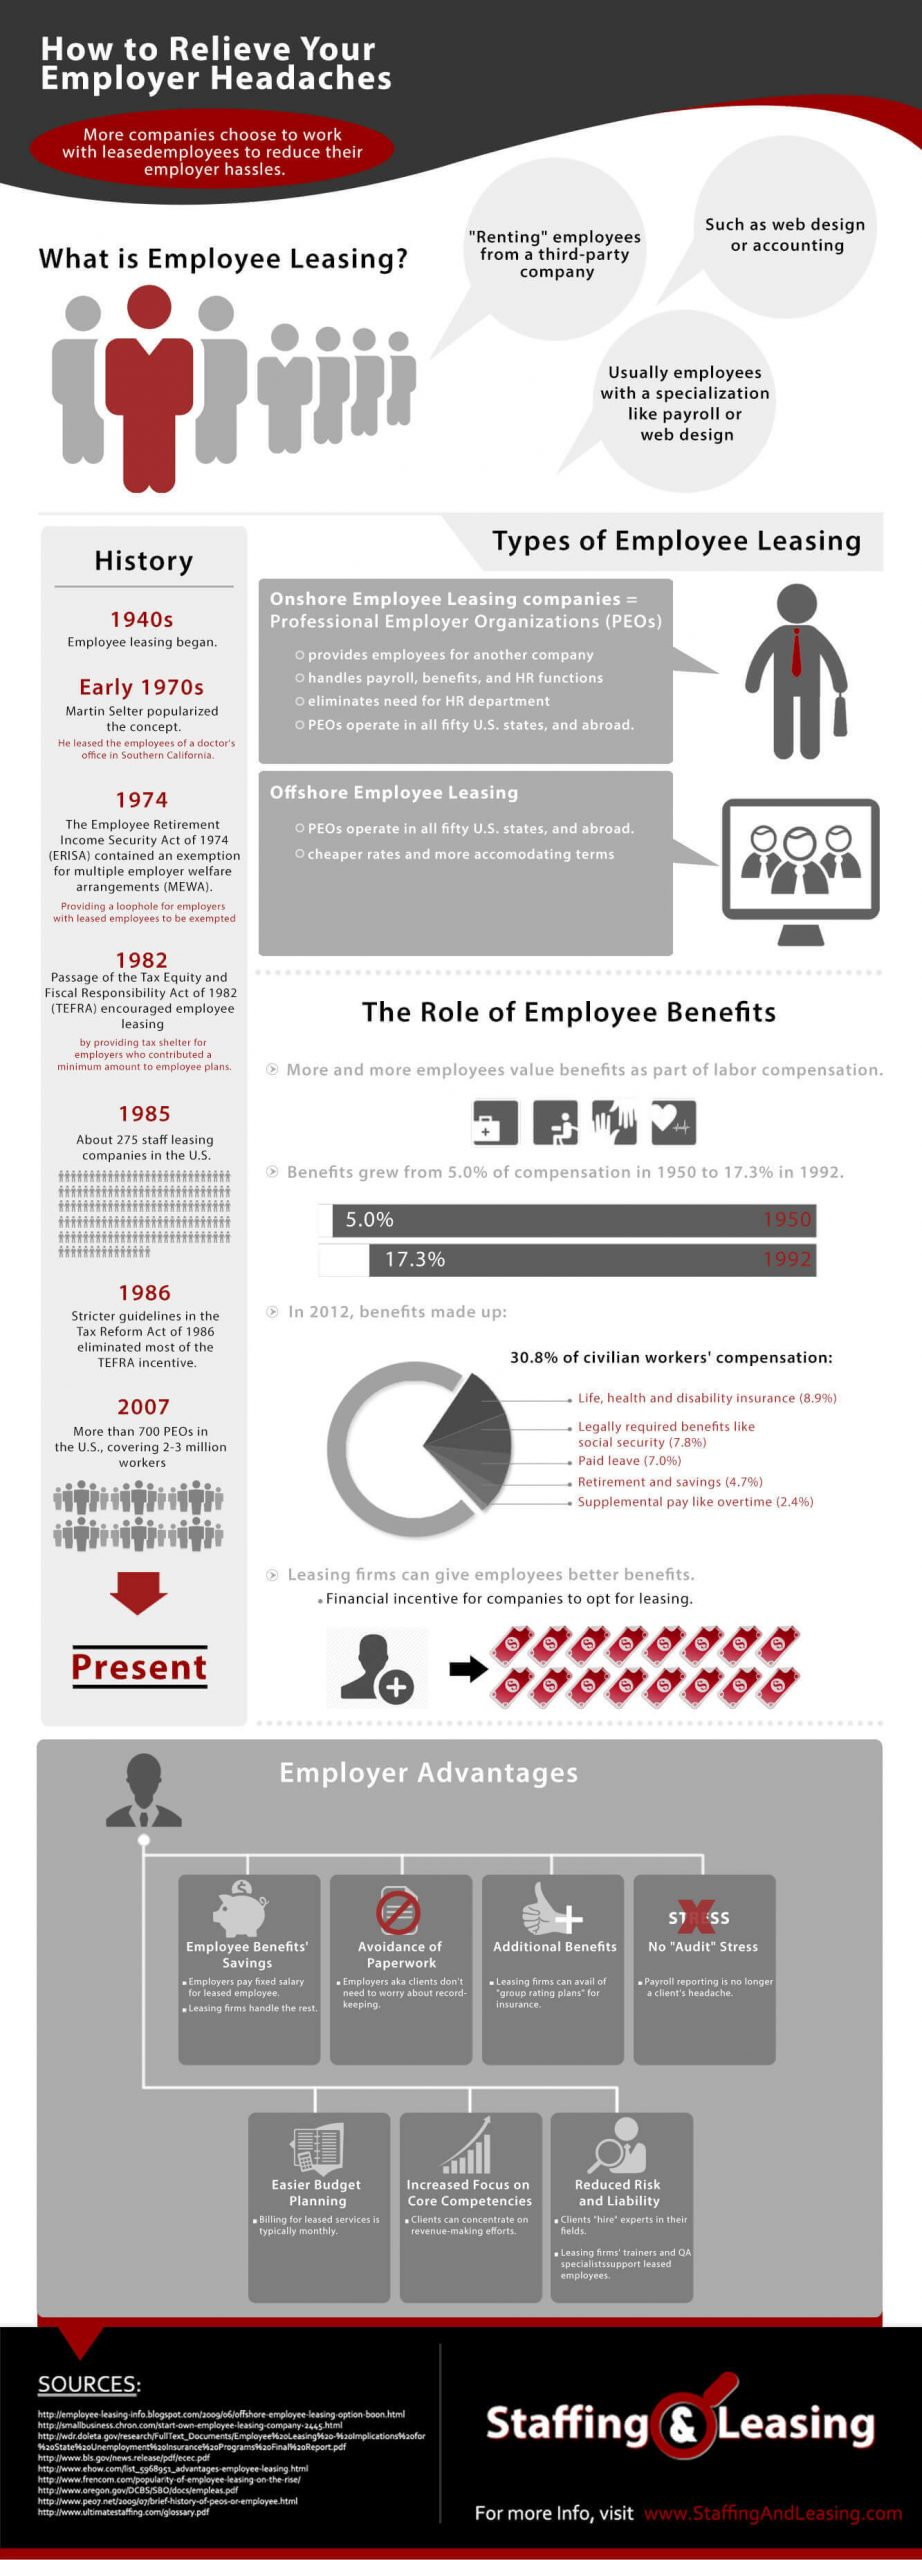 Relieve Your Employer Headaches - An Infographic